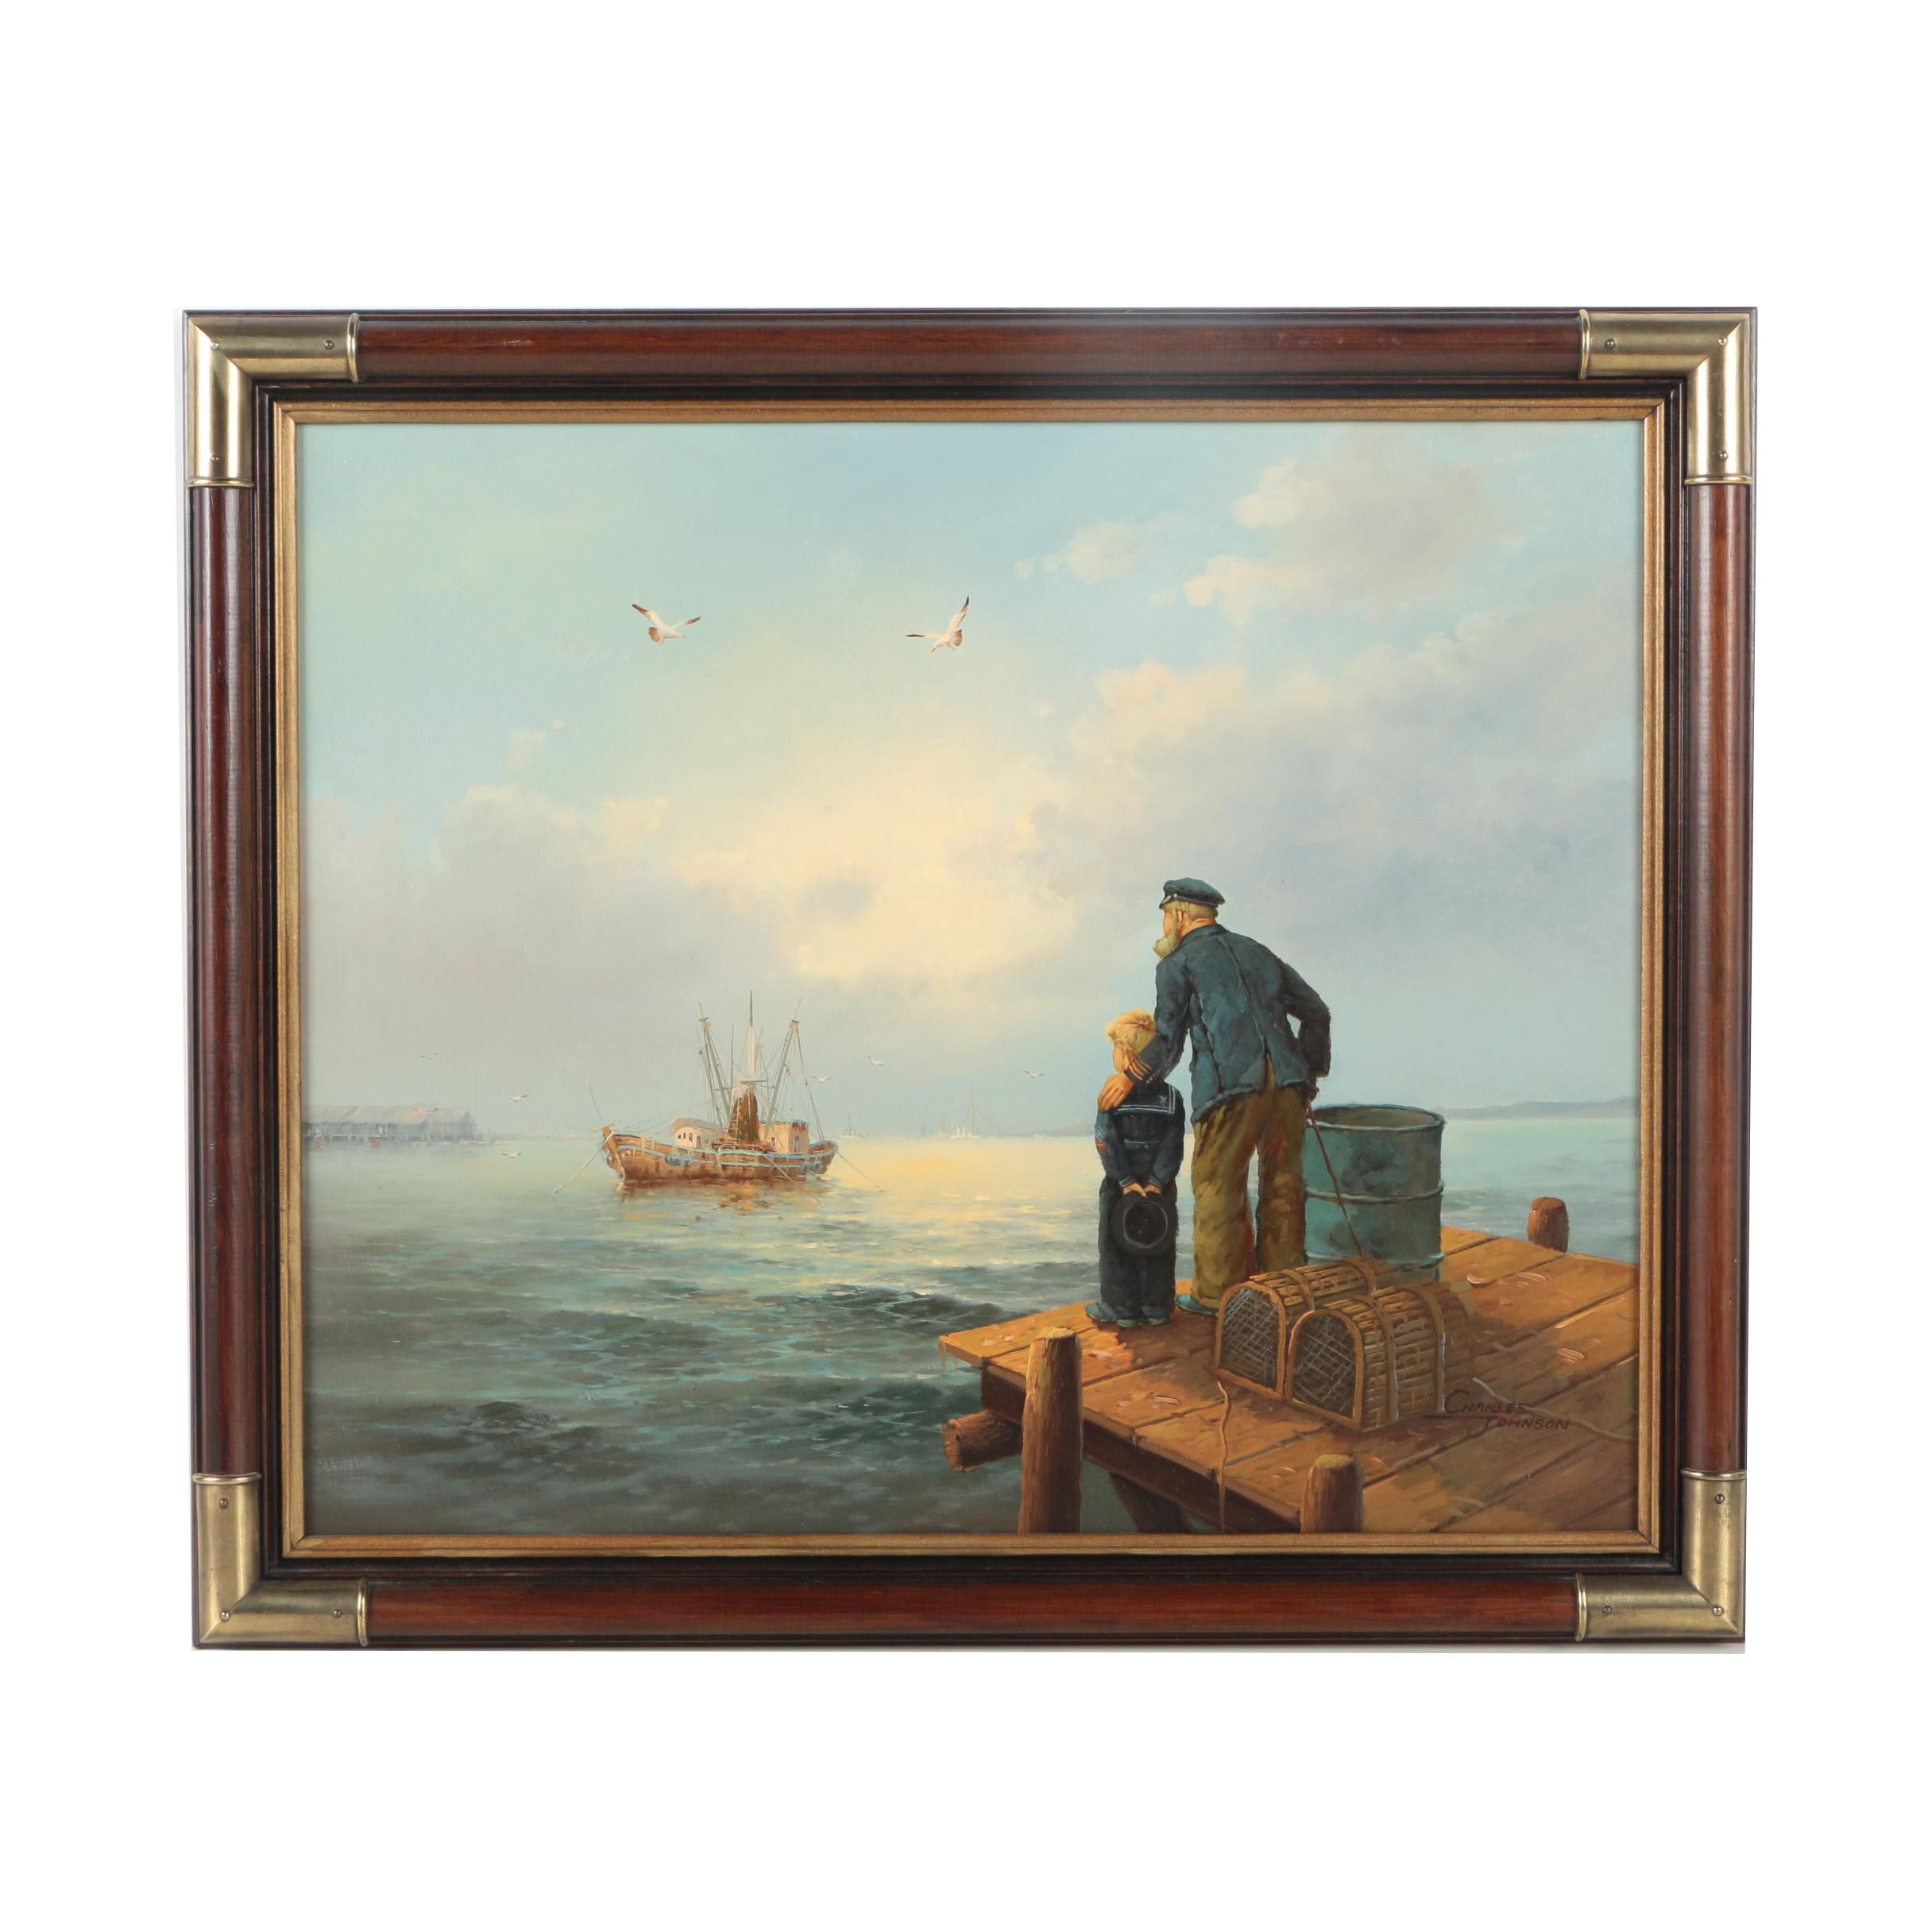 Charles Johnson Oil Painting on Canvas of a Sailor and a Boy on a Pier